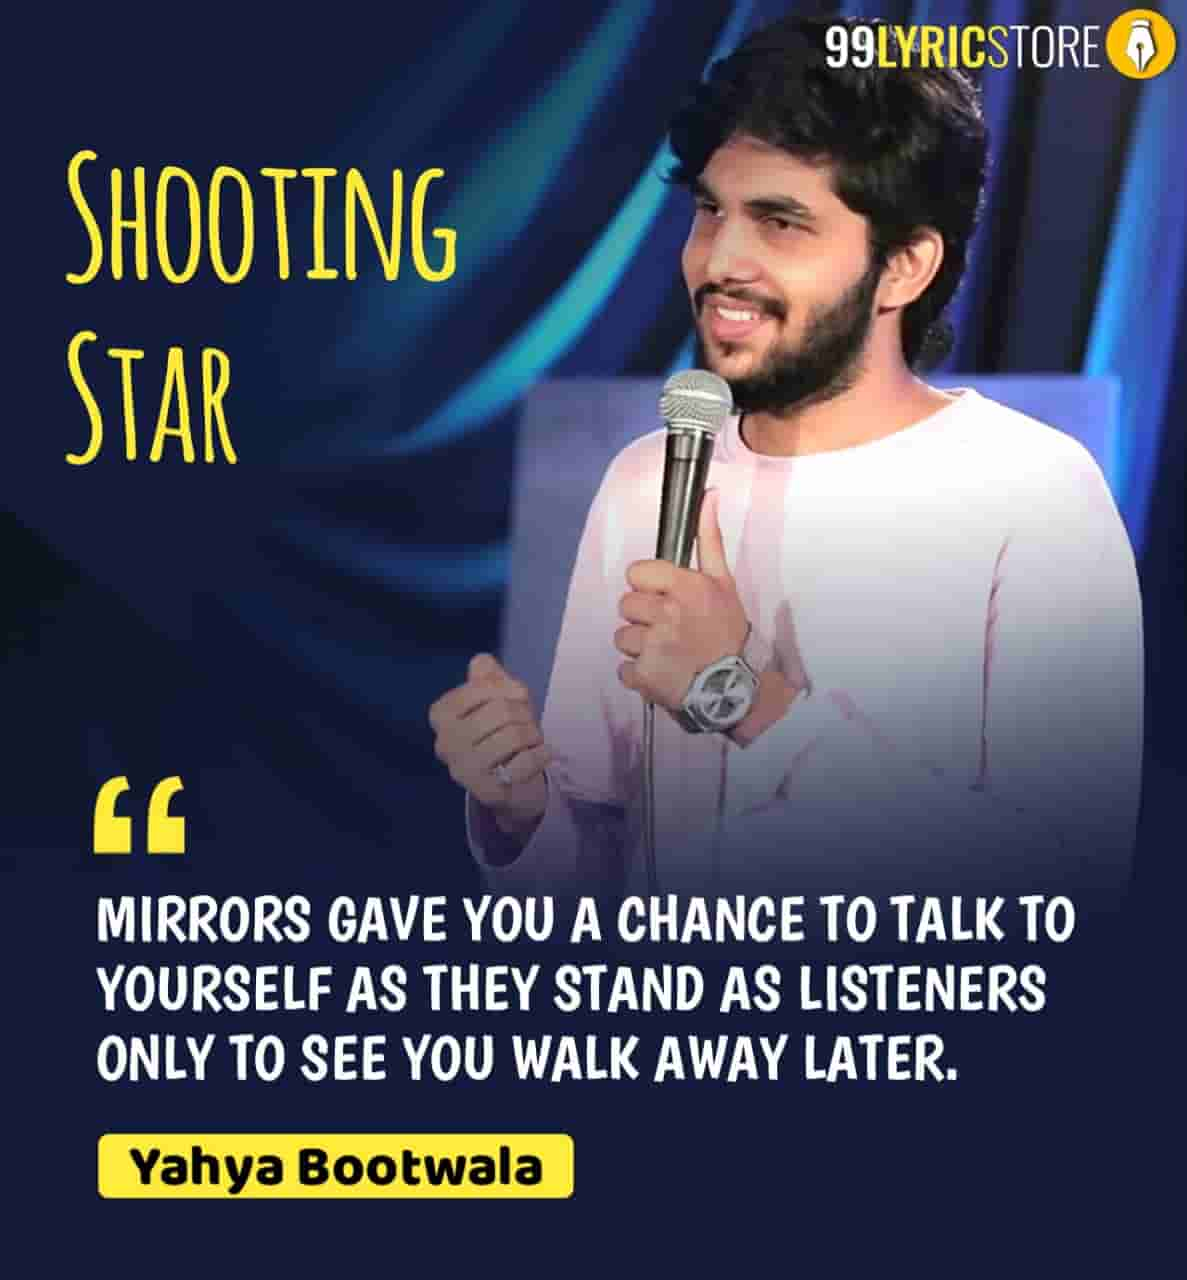 This beautiful piece 'Shooting Star' has written and performed by Yahya Bootwala.